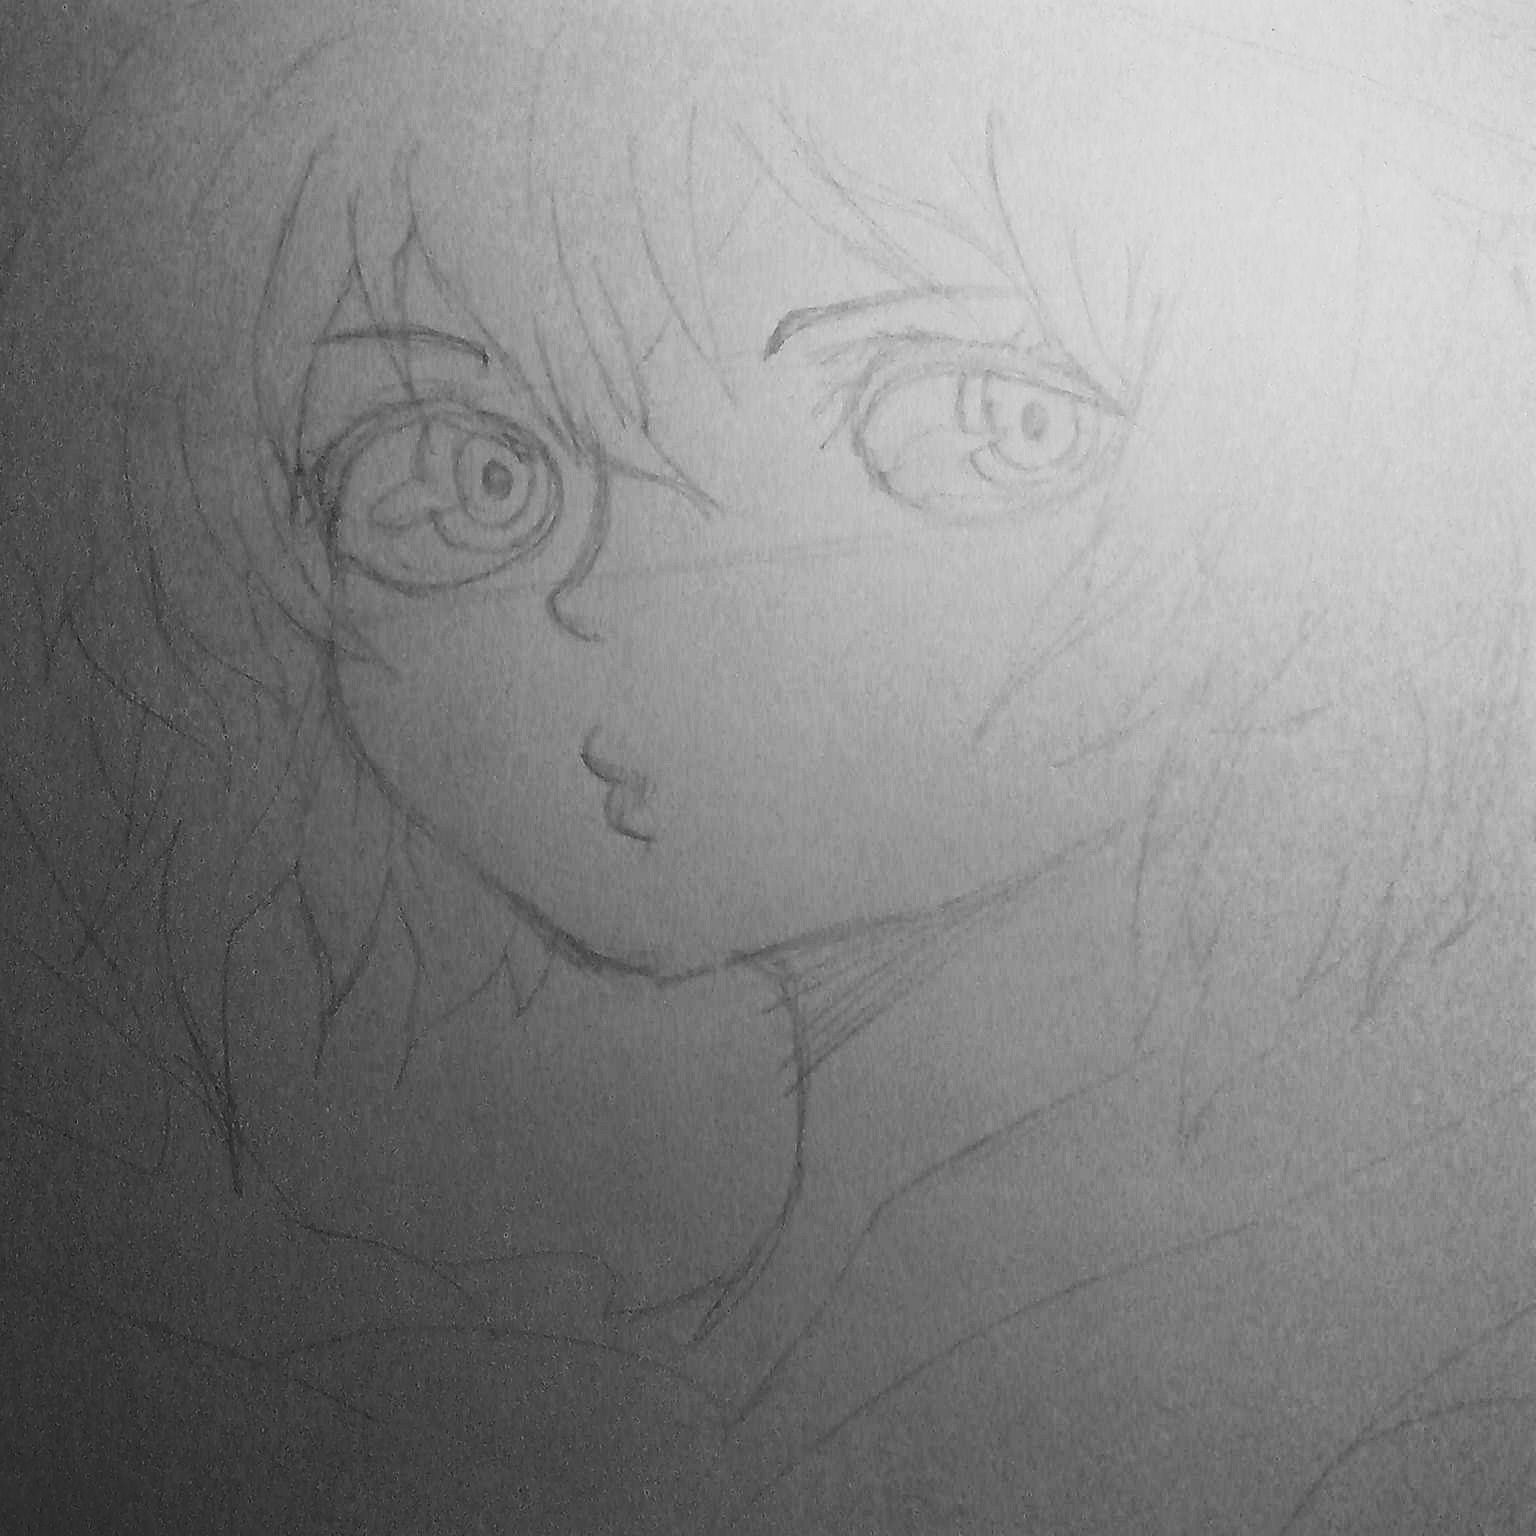 I still need to learn proper lighting for taking pictures of drawings. My battle with depression will be through art.